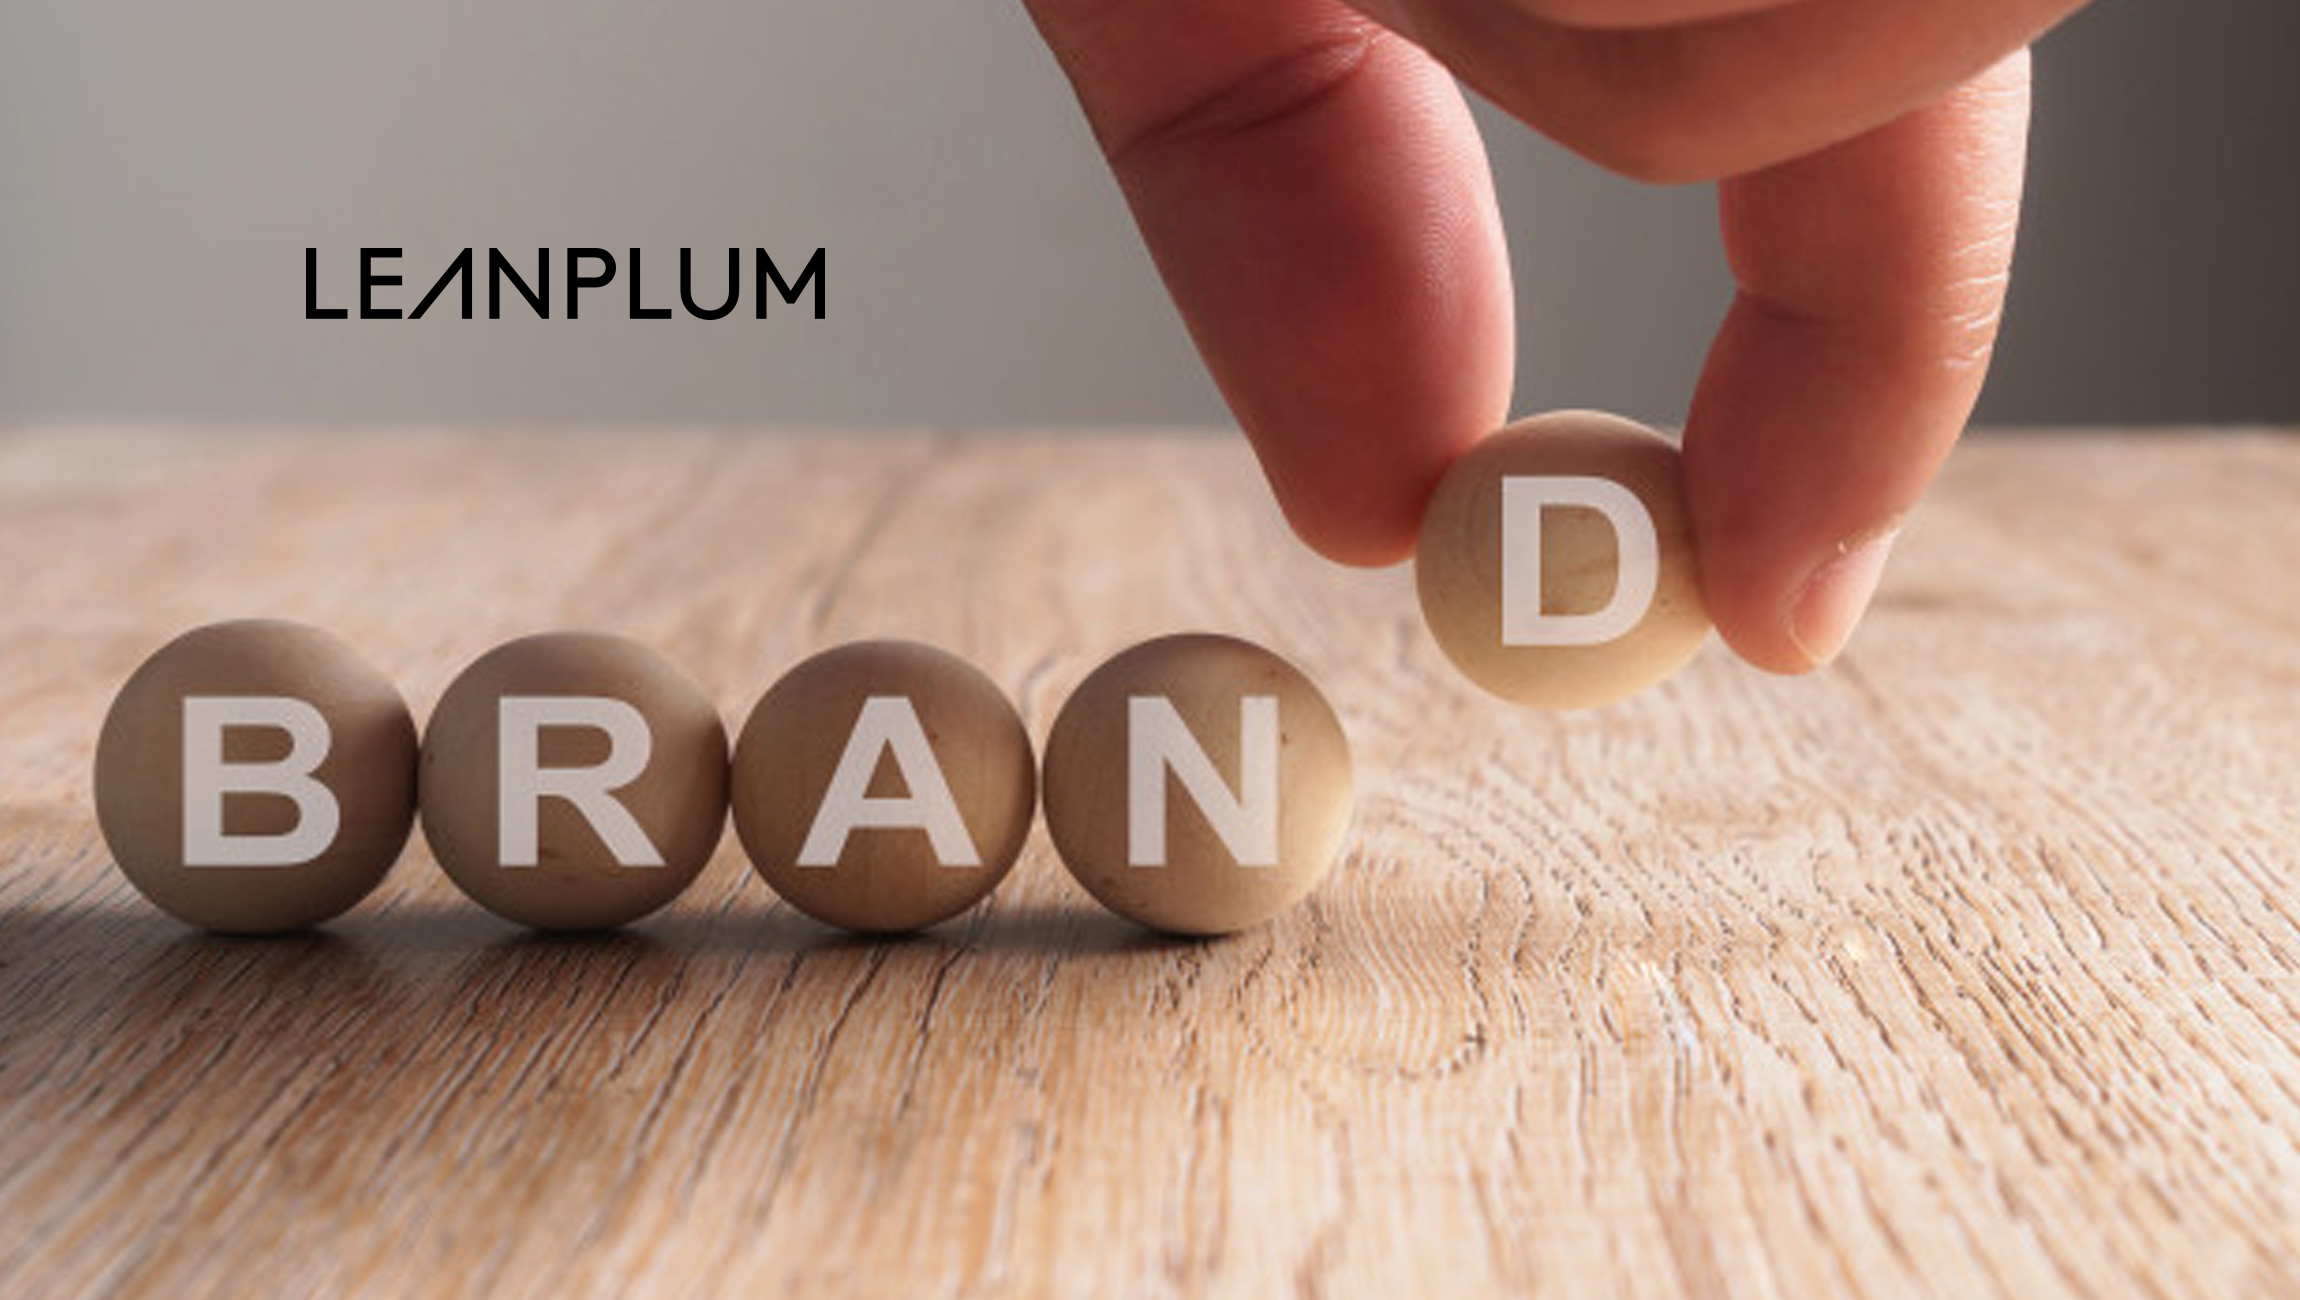 Top Reason Brands Fail Is Annoying Communications